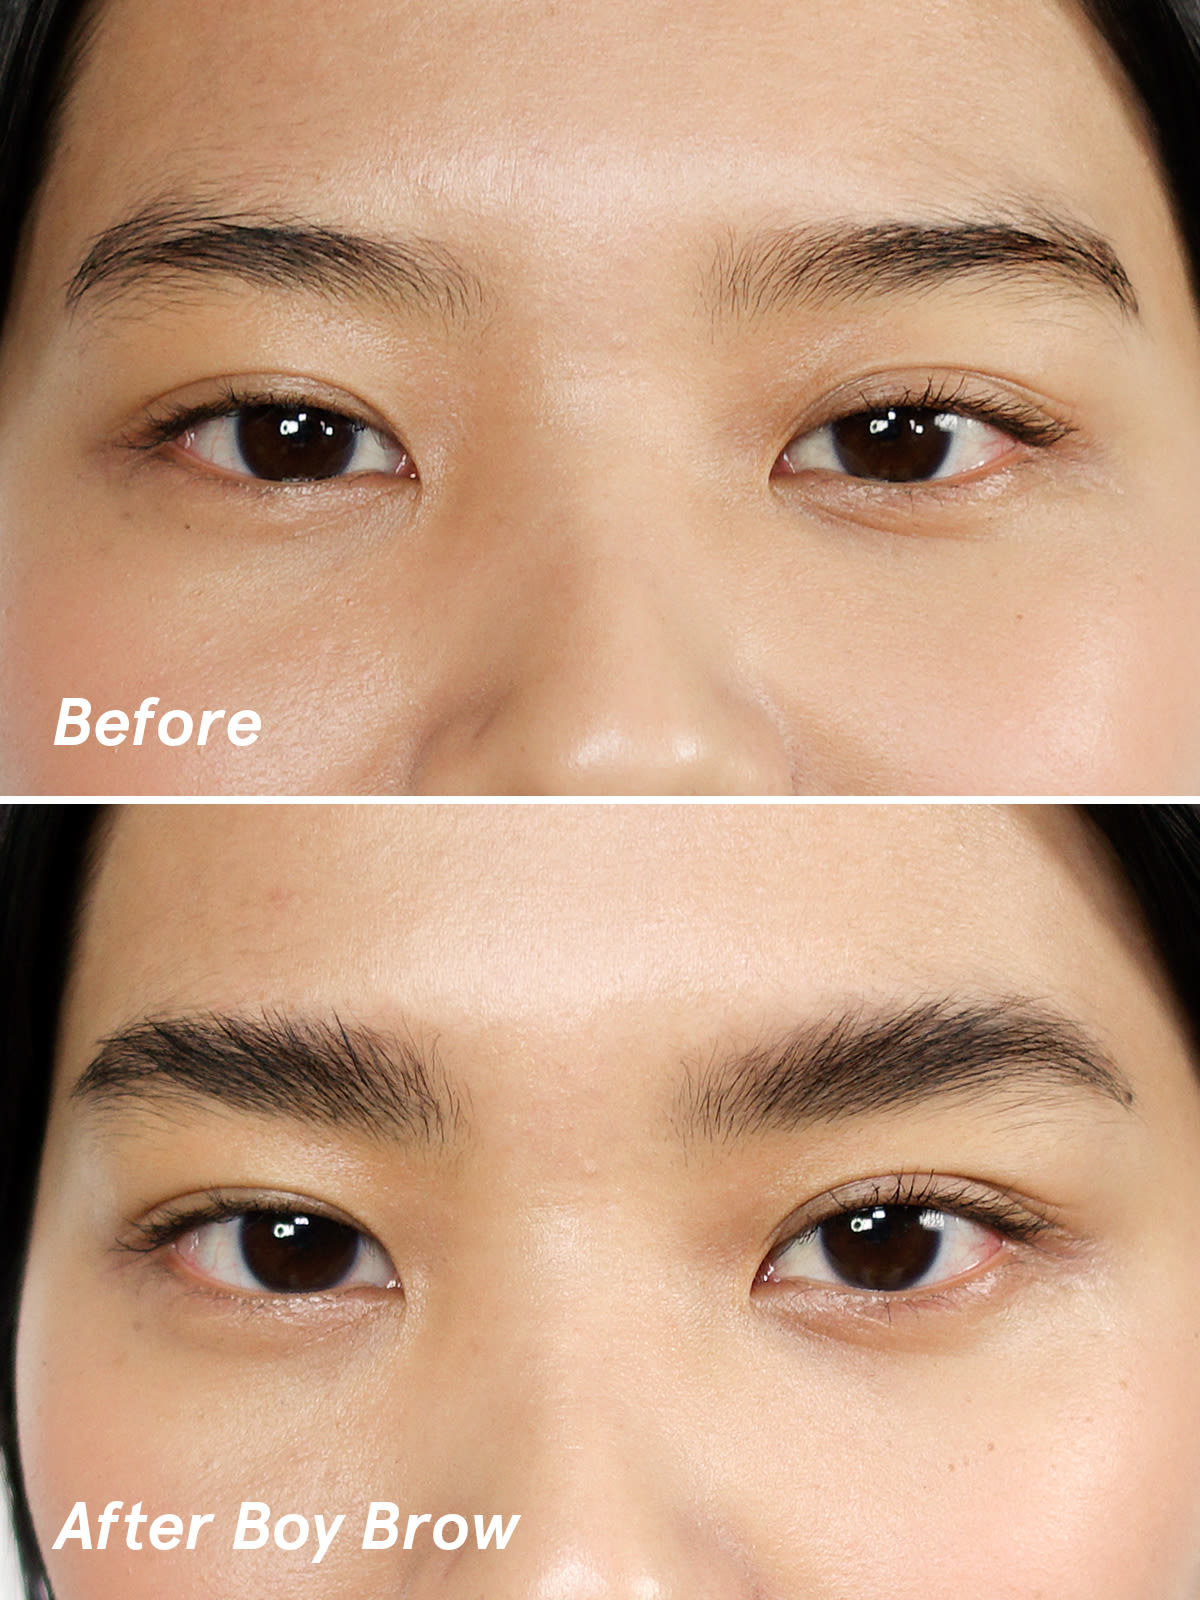 A model using the Boy Brow in black